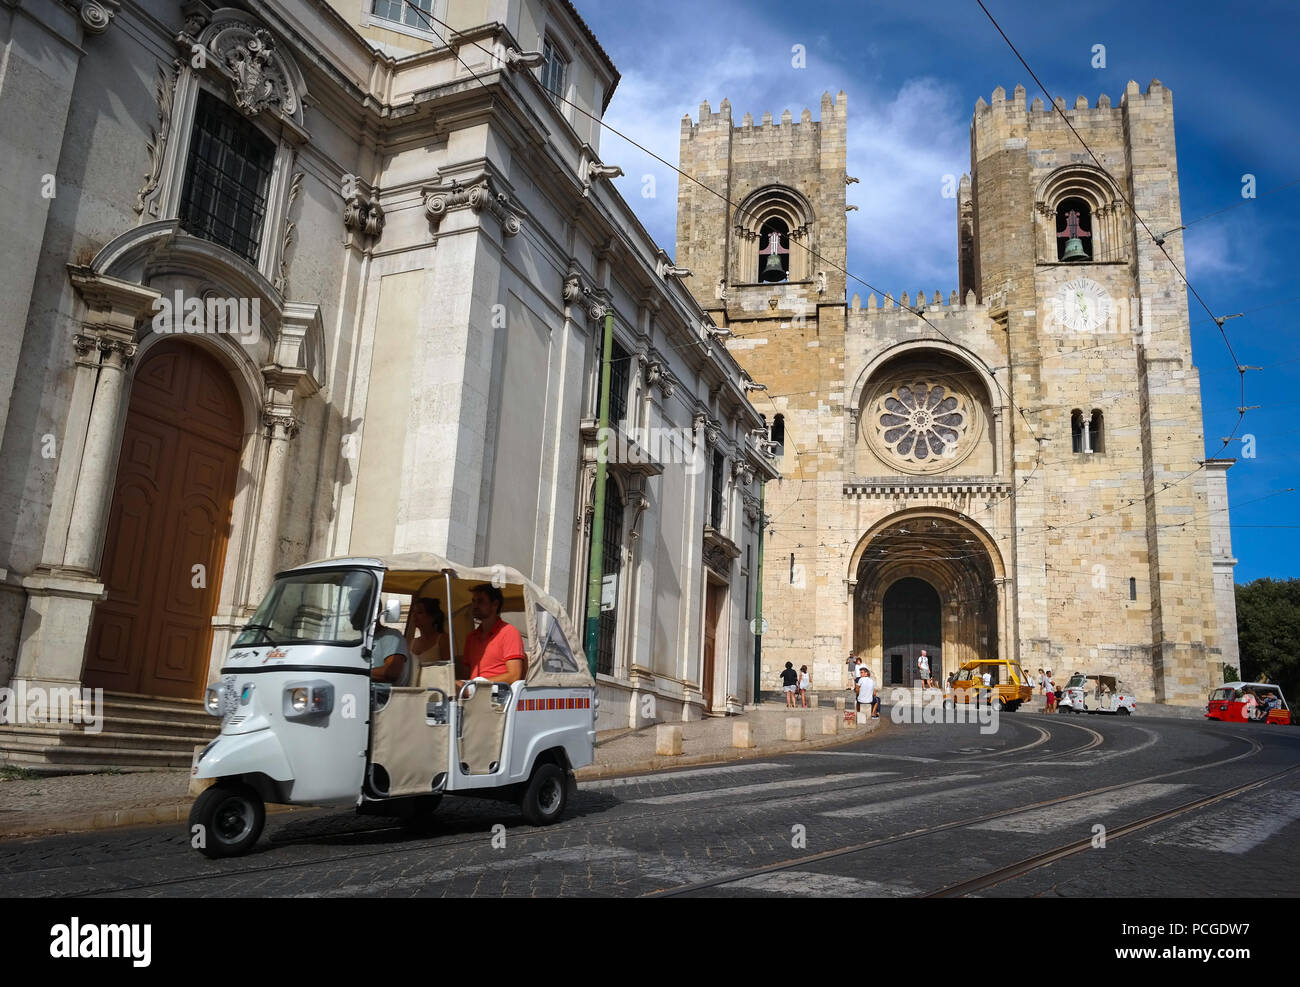 Lisbon. Tourists avoiding the steep climb by taking a Tuk-tuk. Cathedral Zé in the background. - Stock Image